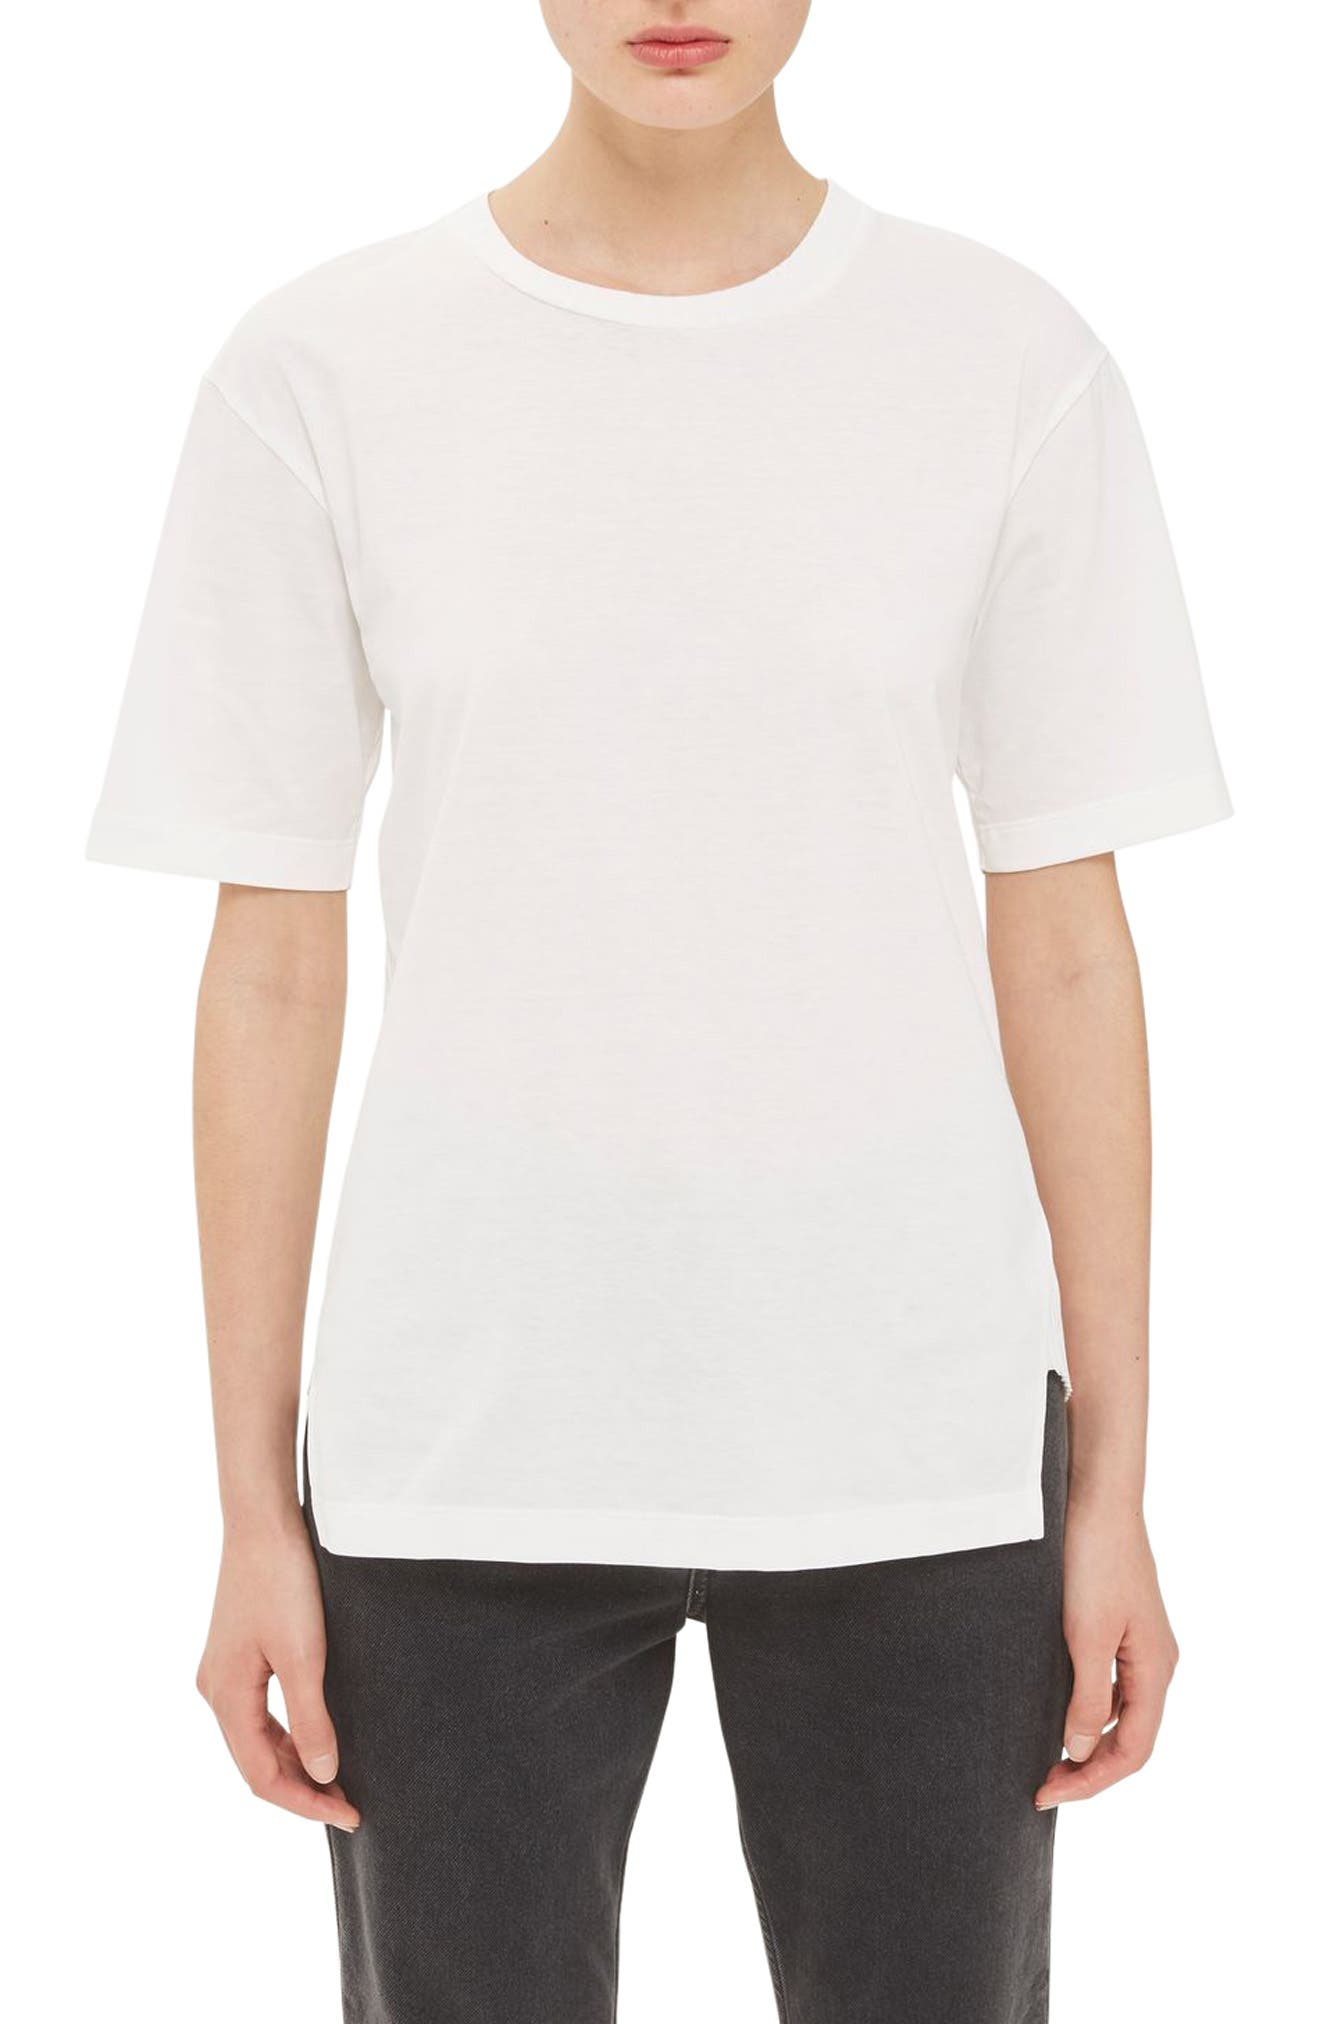 Topshop Boutique Rib Back Tee